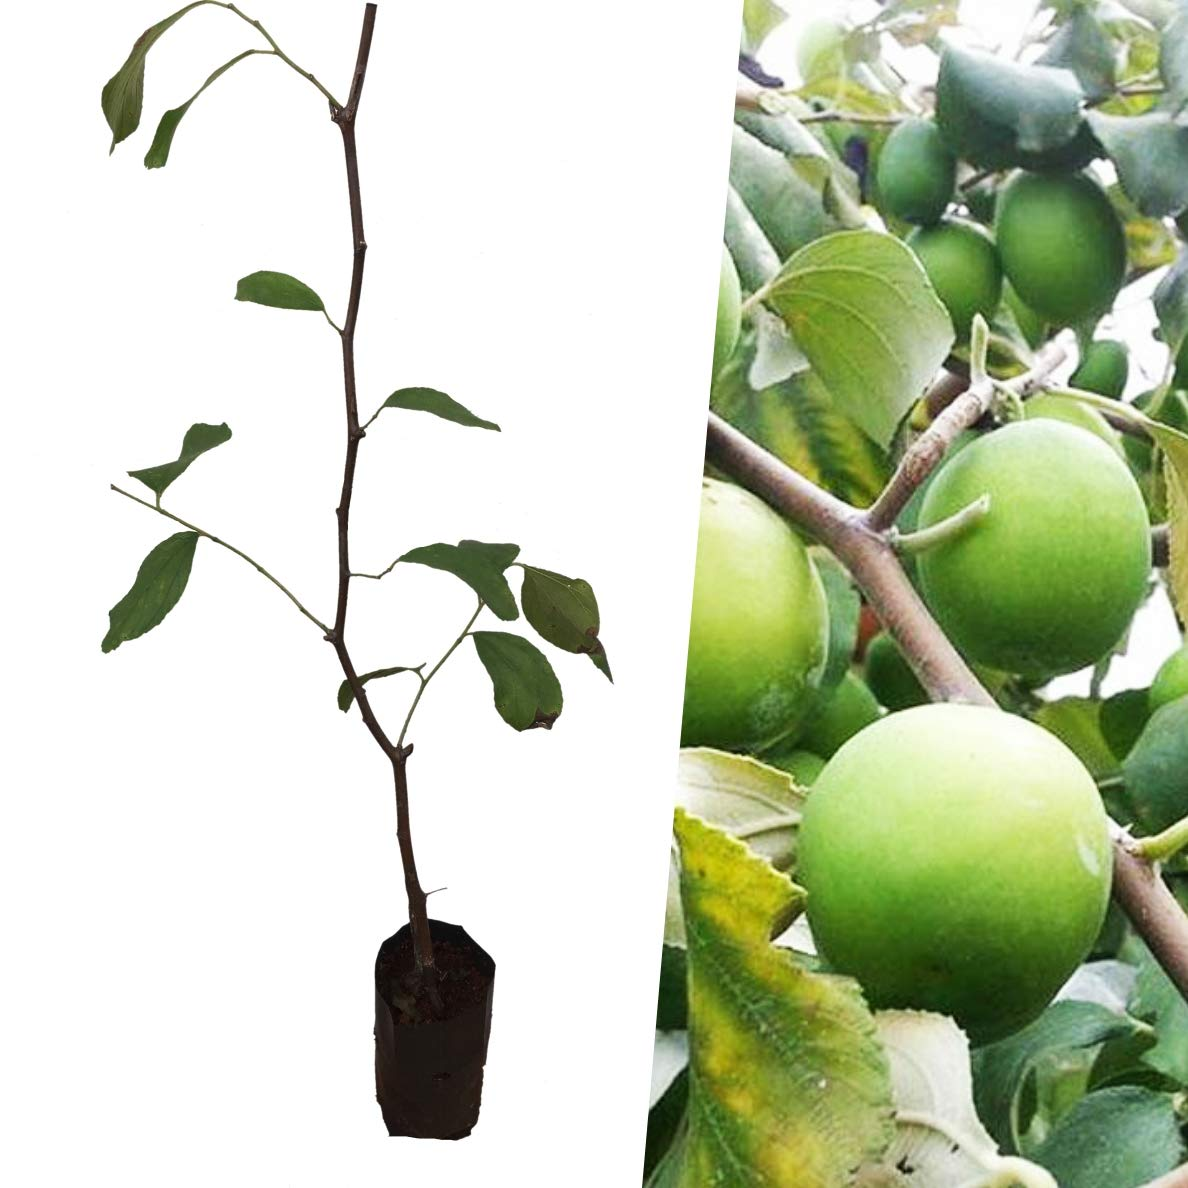 Thai Jujube grafted Tree Large Fruit Size New Variety''Milk-Jujube'' Tropical Fruit Plant from Thailand by Plant Indy